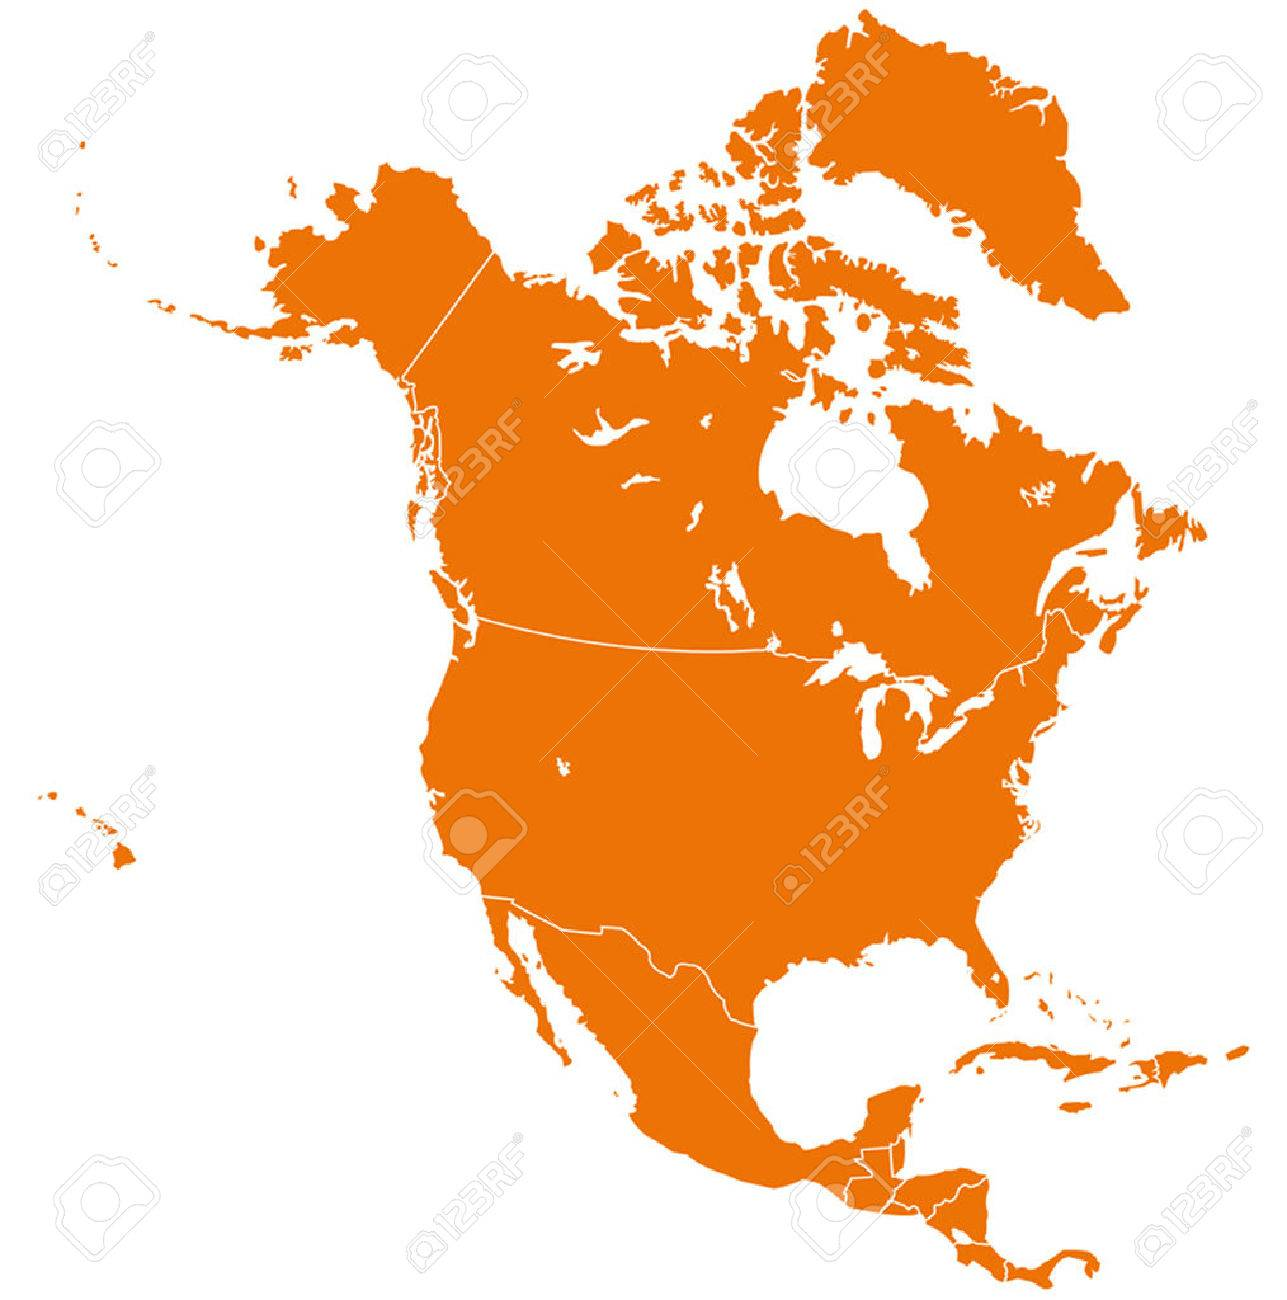 north america map royalty free cliparts vectors and stock rh 123rf com north america vector map with states and provinces north america map vector ai